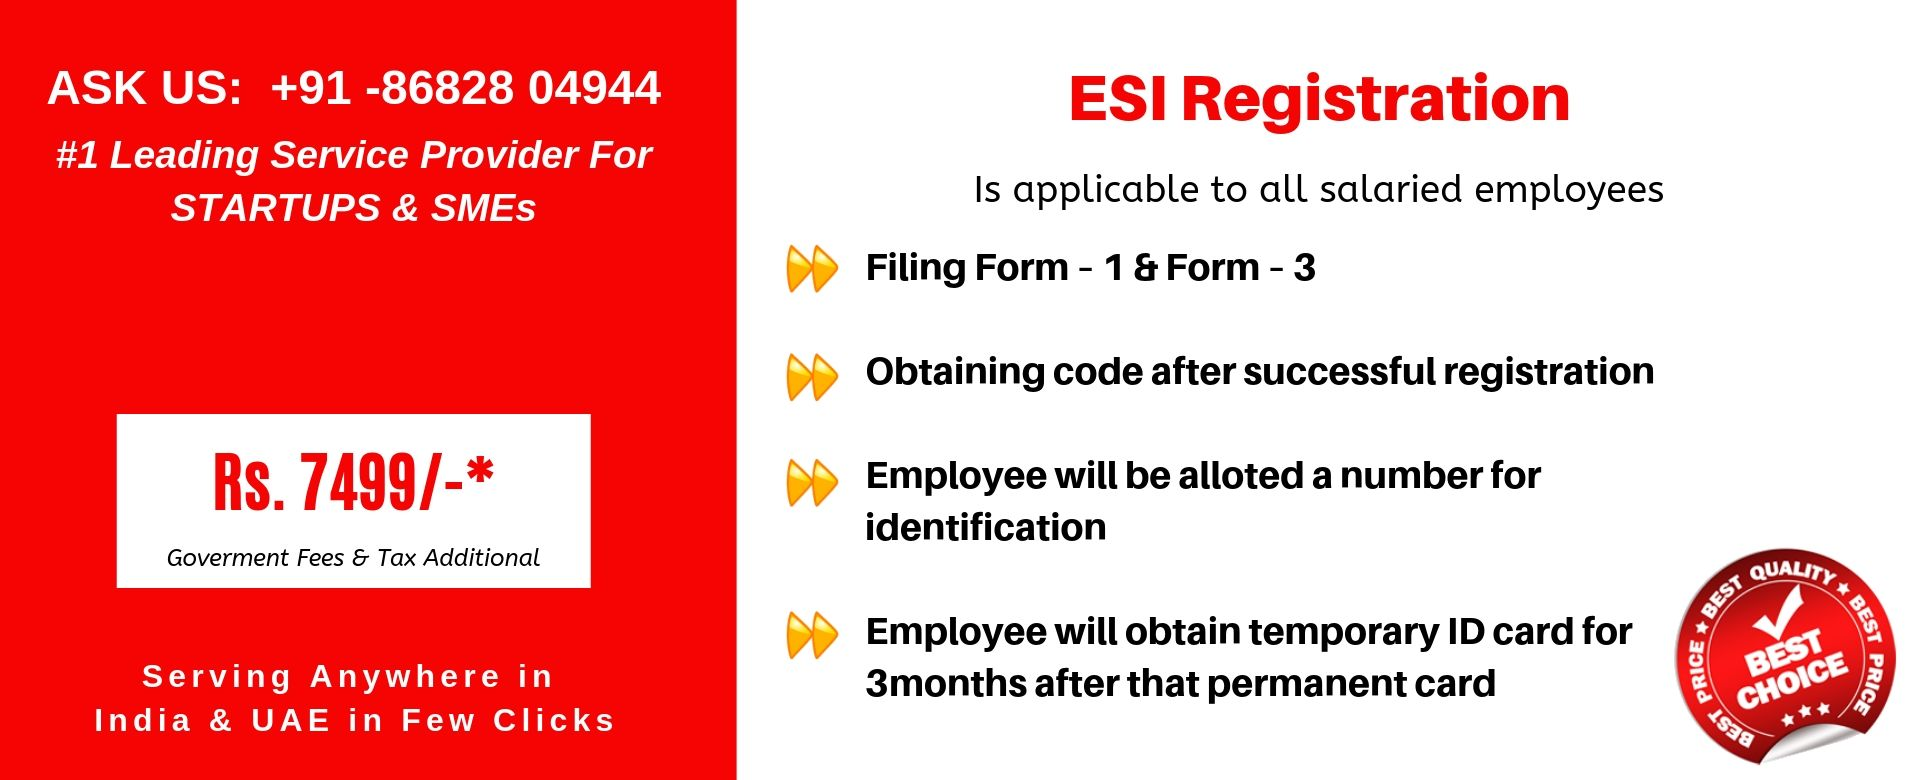 esi registration in india